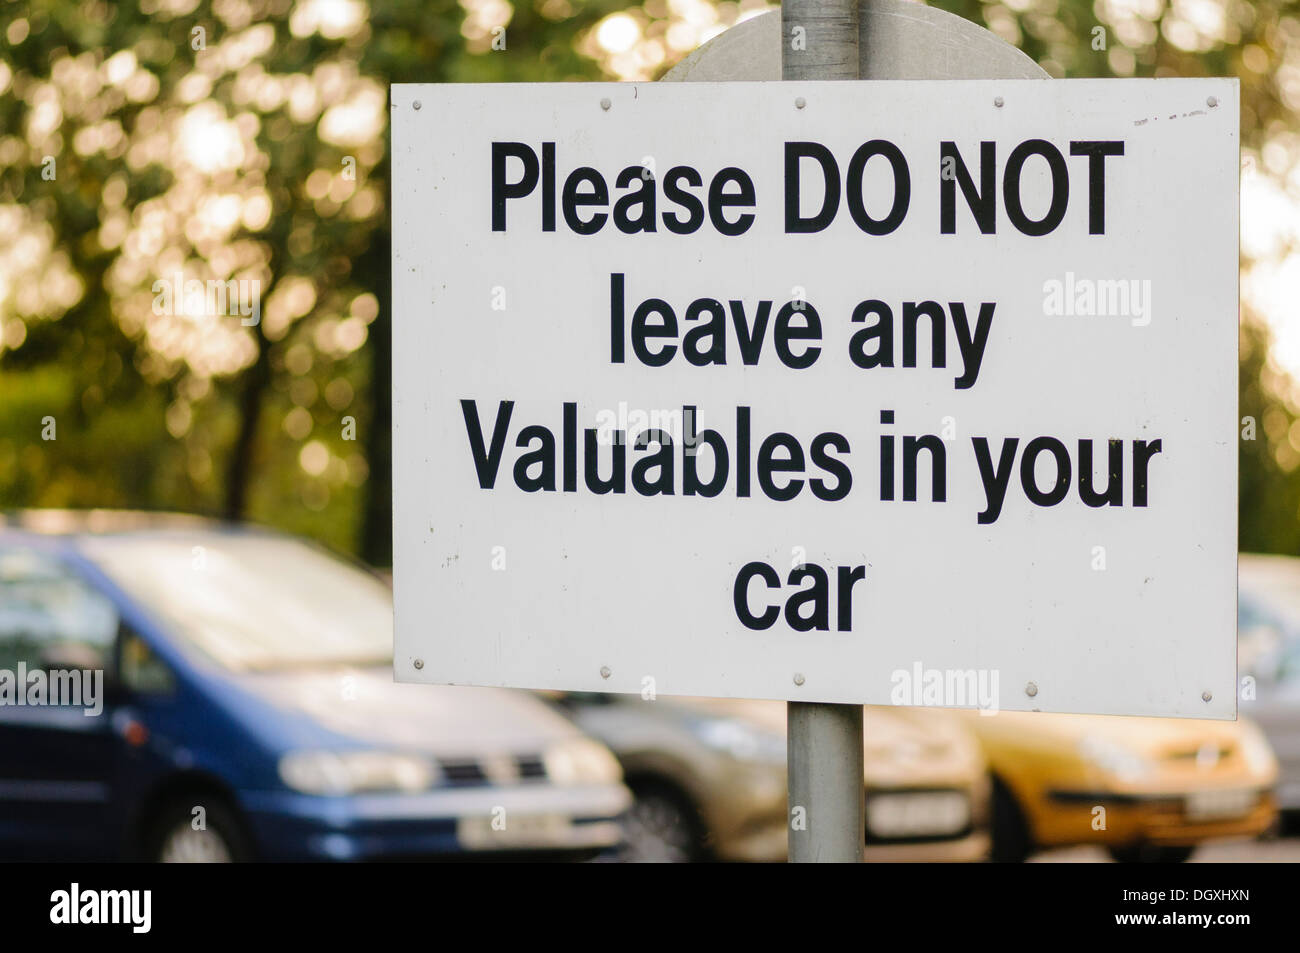 Sign in a car park warning drivers not to leave any valuables in their car - Stock Image